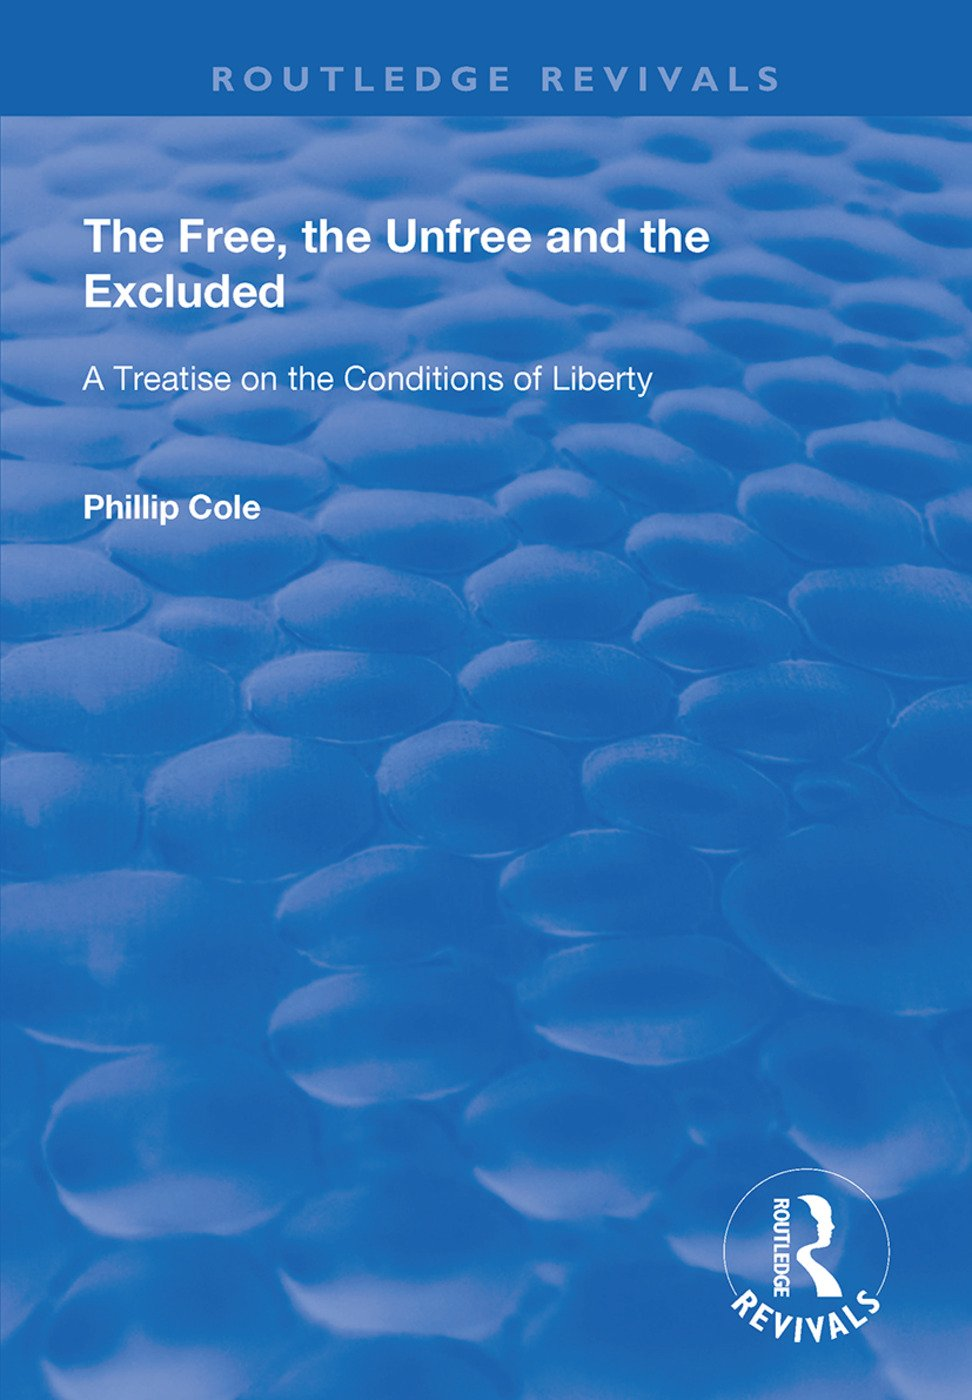 The Free, the Unfree and the Excluded: A Treatise on the Conditions of Liberty book cover